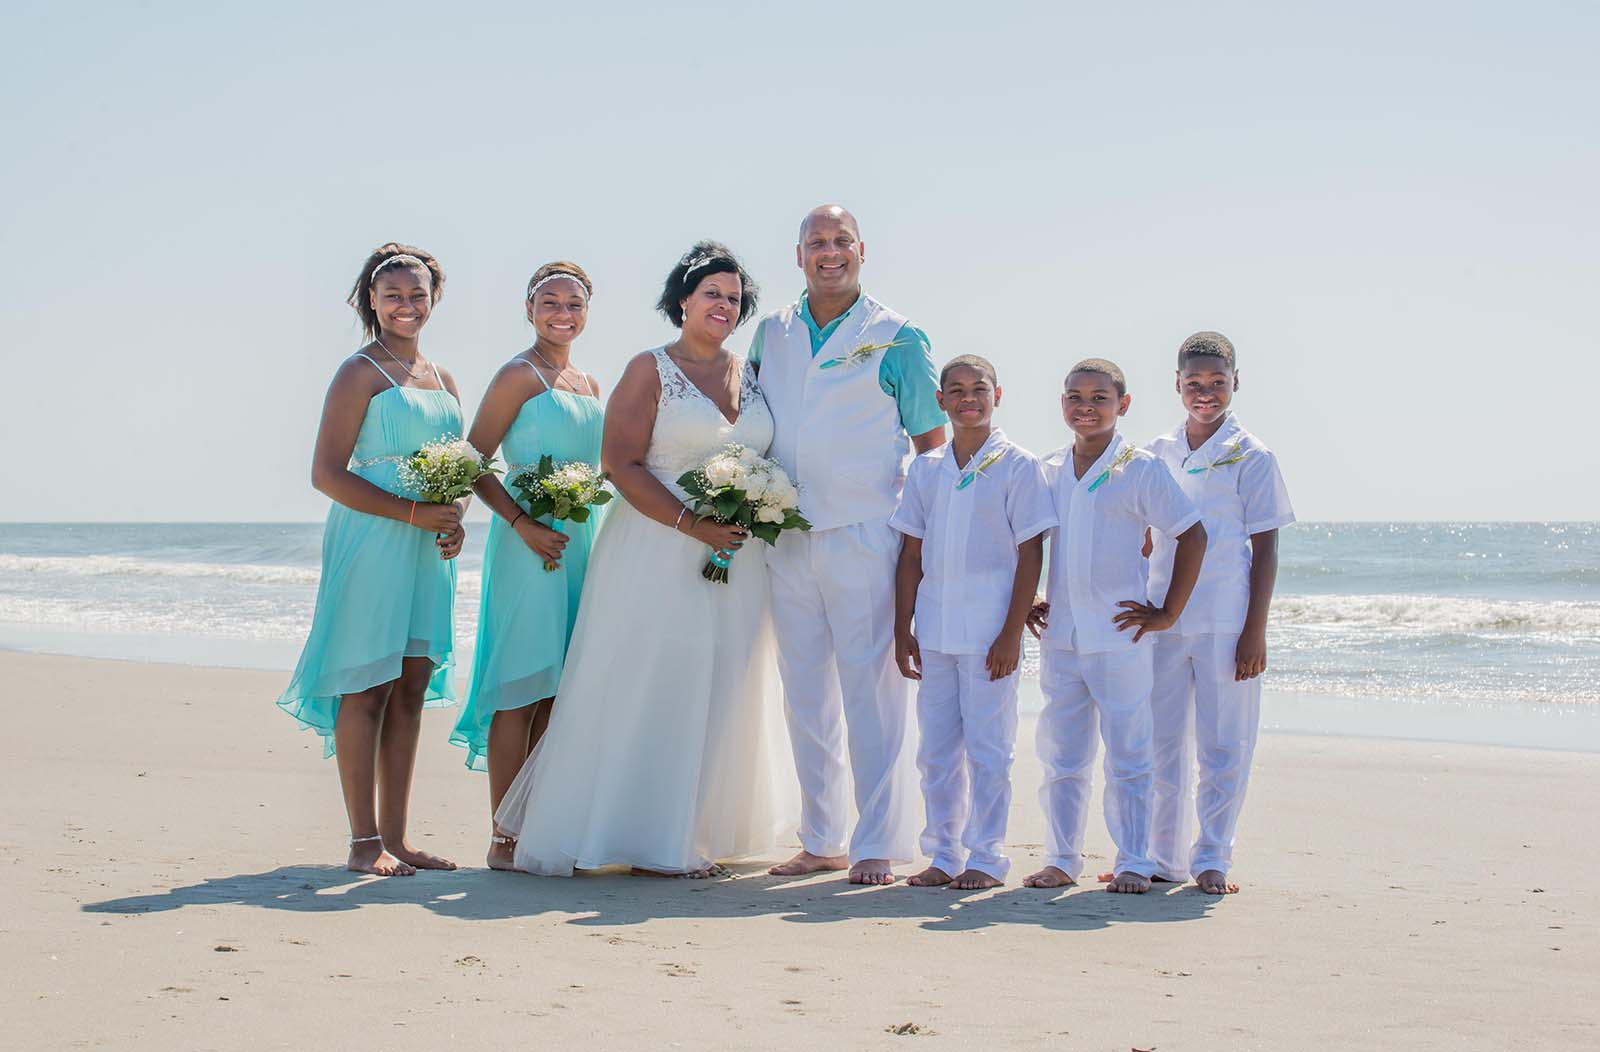 family group wedding photo in blue and white on beach